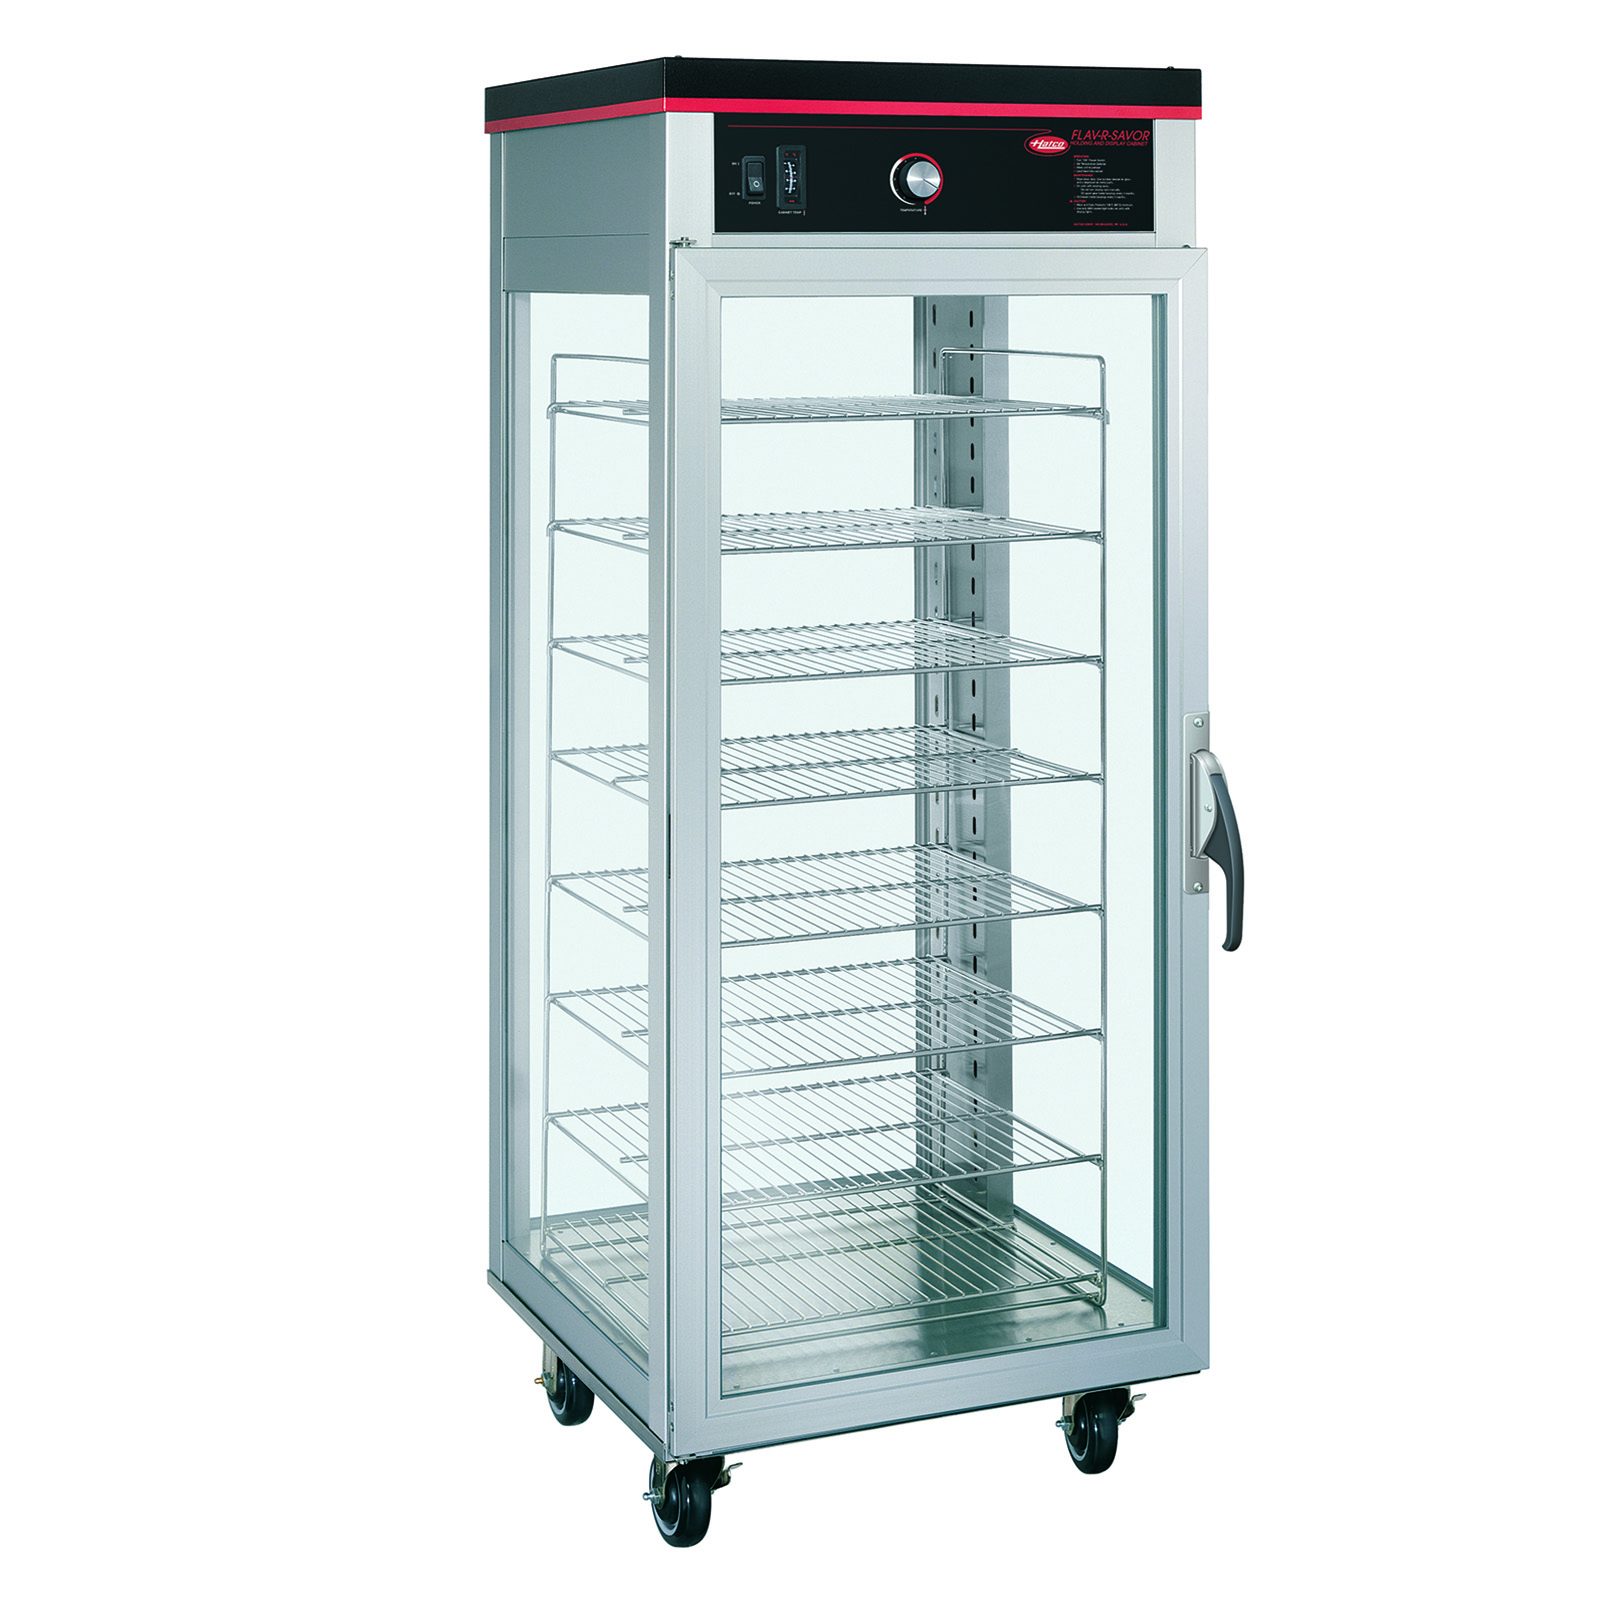 Hatco PFST-1X display cabinets